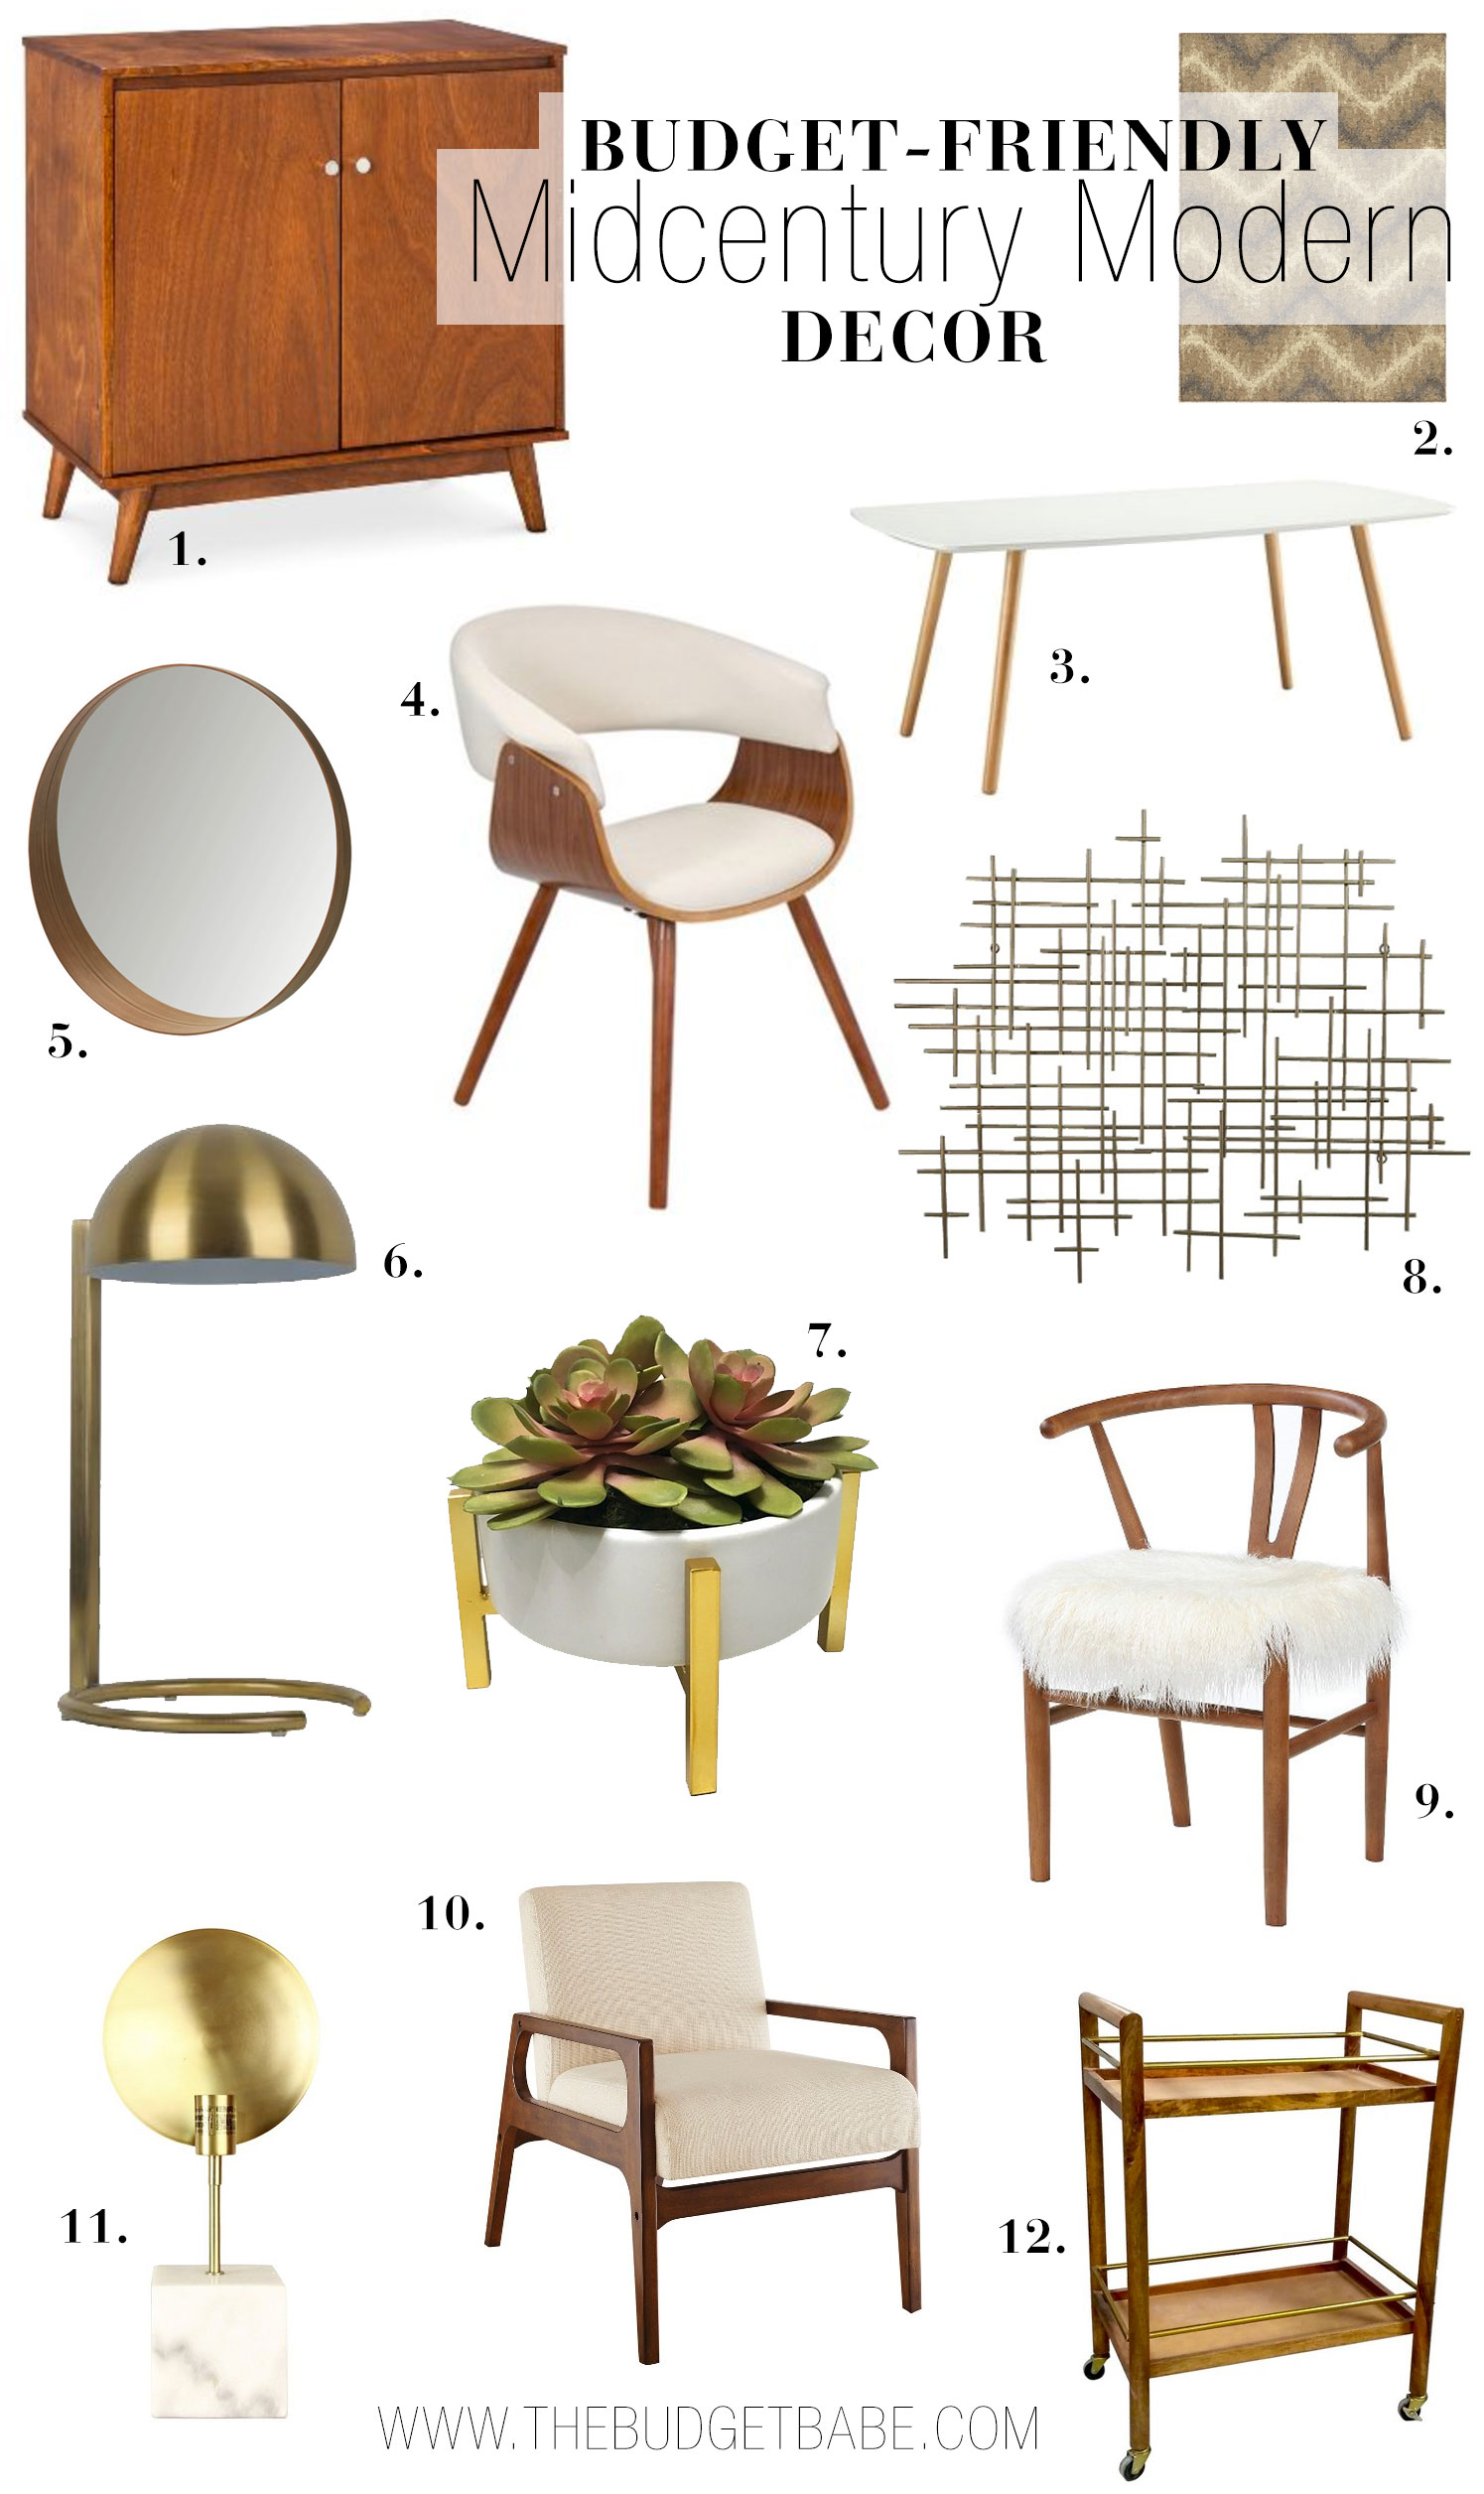 Where to Buy Budget Friendly Midcentury Modern Decor The  : wheretobuybudgetmidcenturymoderndecor1 from www.bloglovin.com size 1495 x 2512 jpeg 393kB